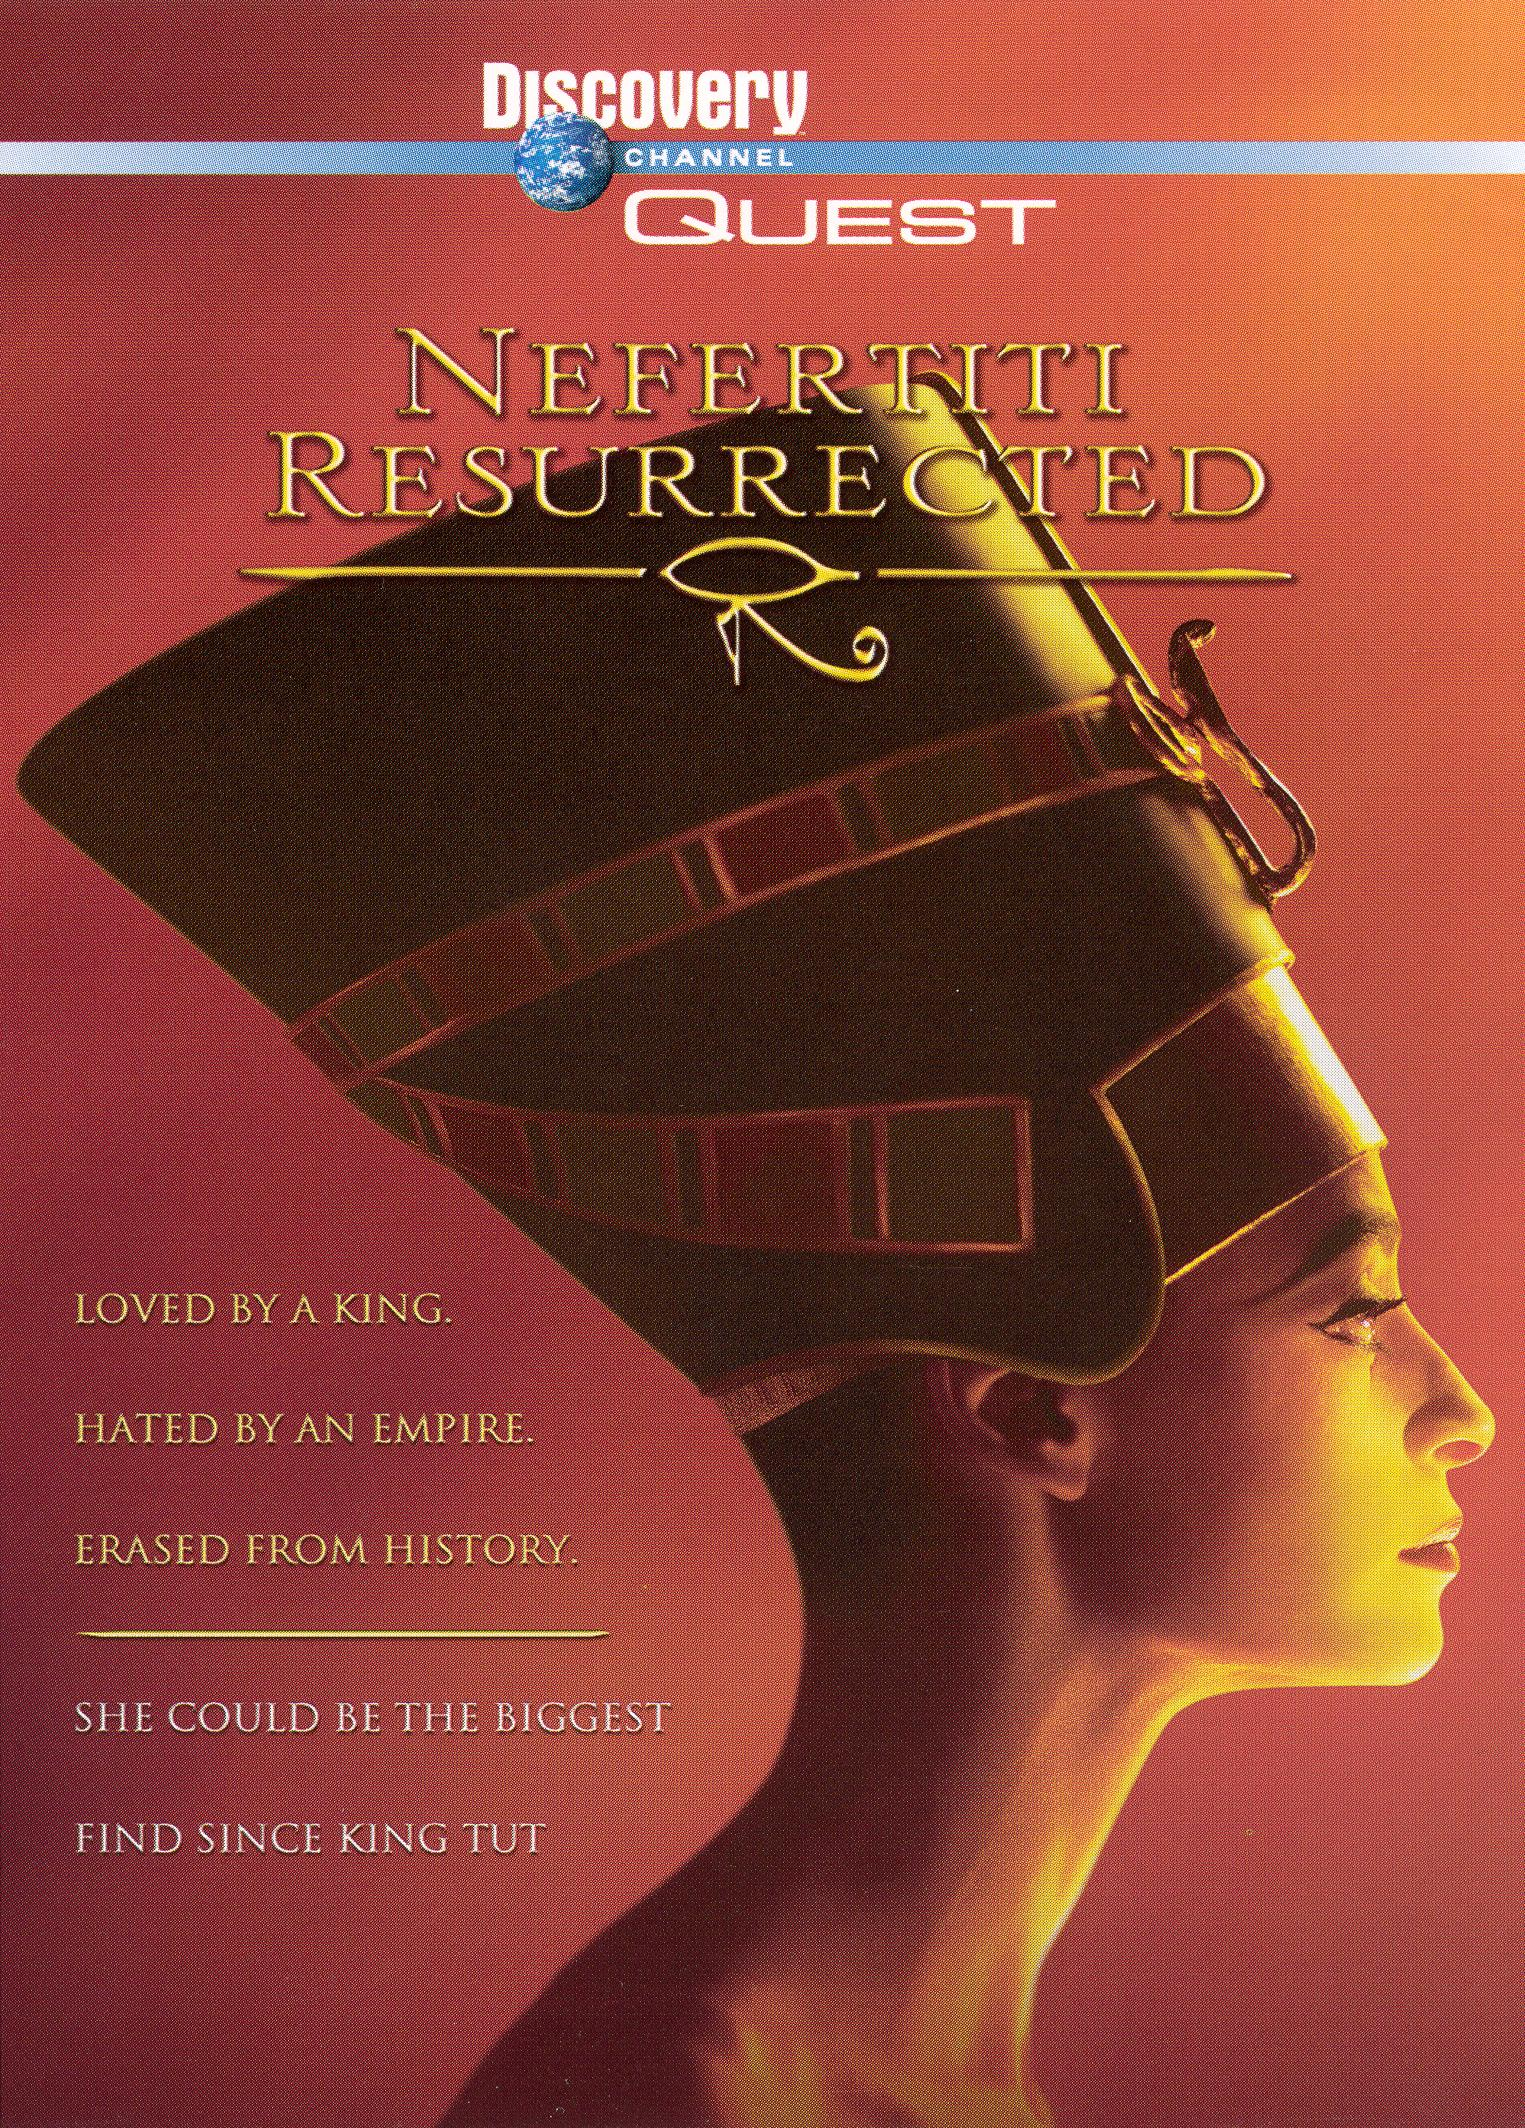 Quest: Nefertiti Resurrected